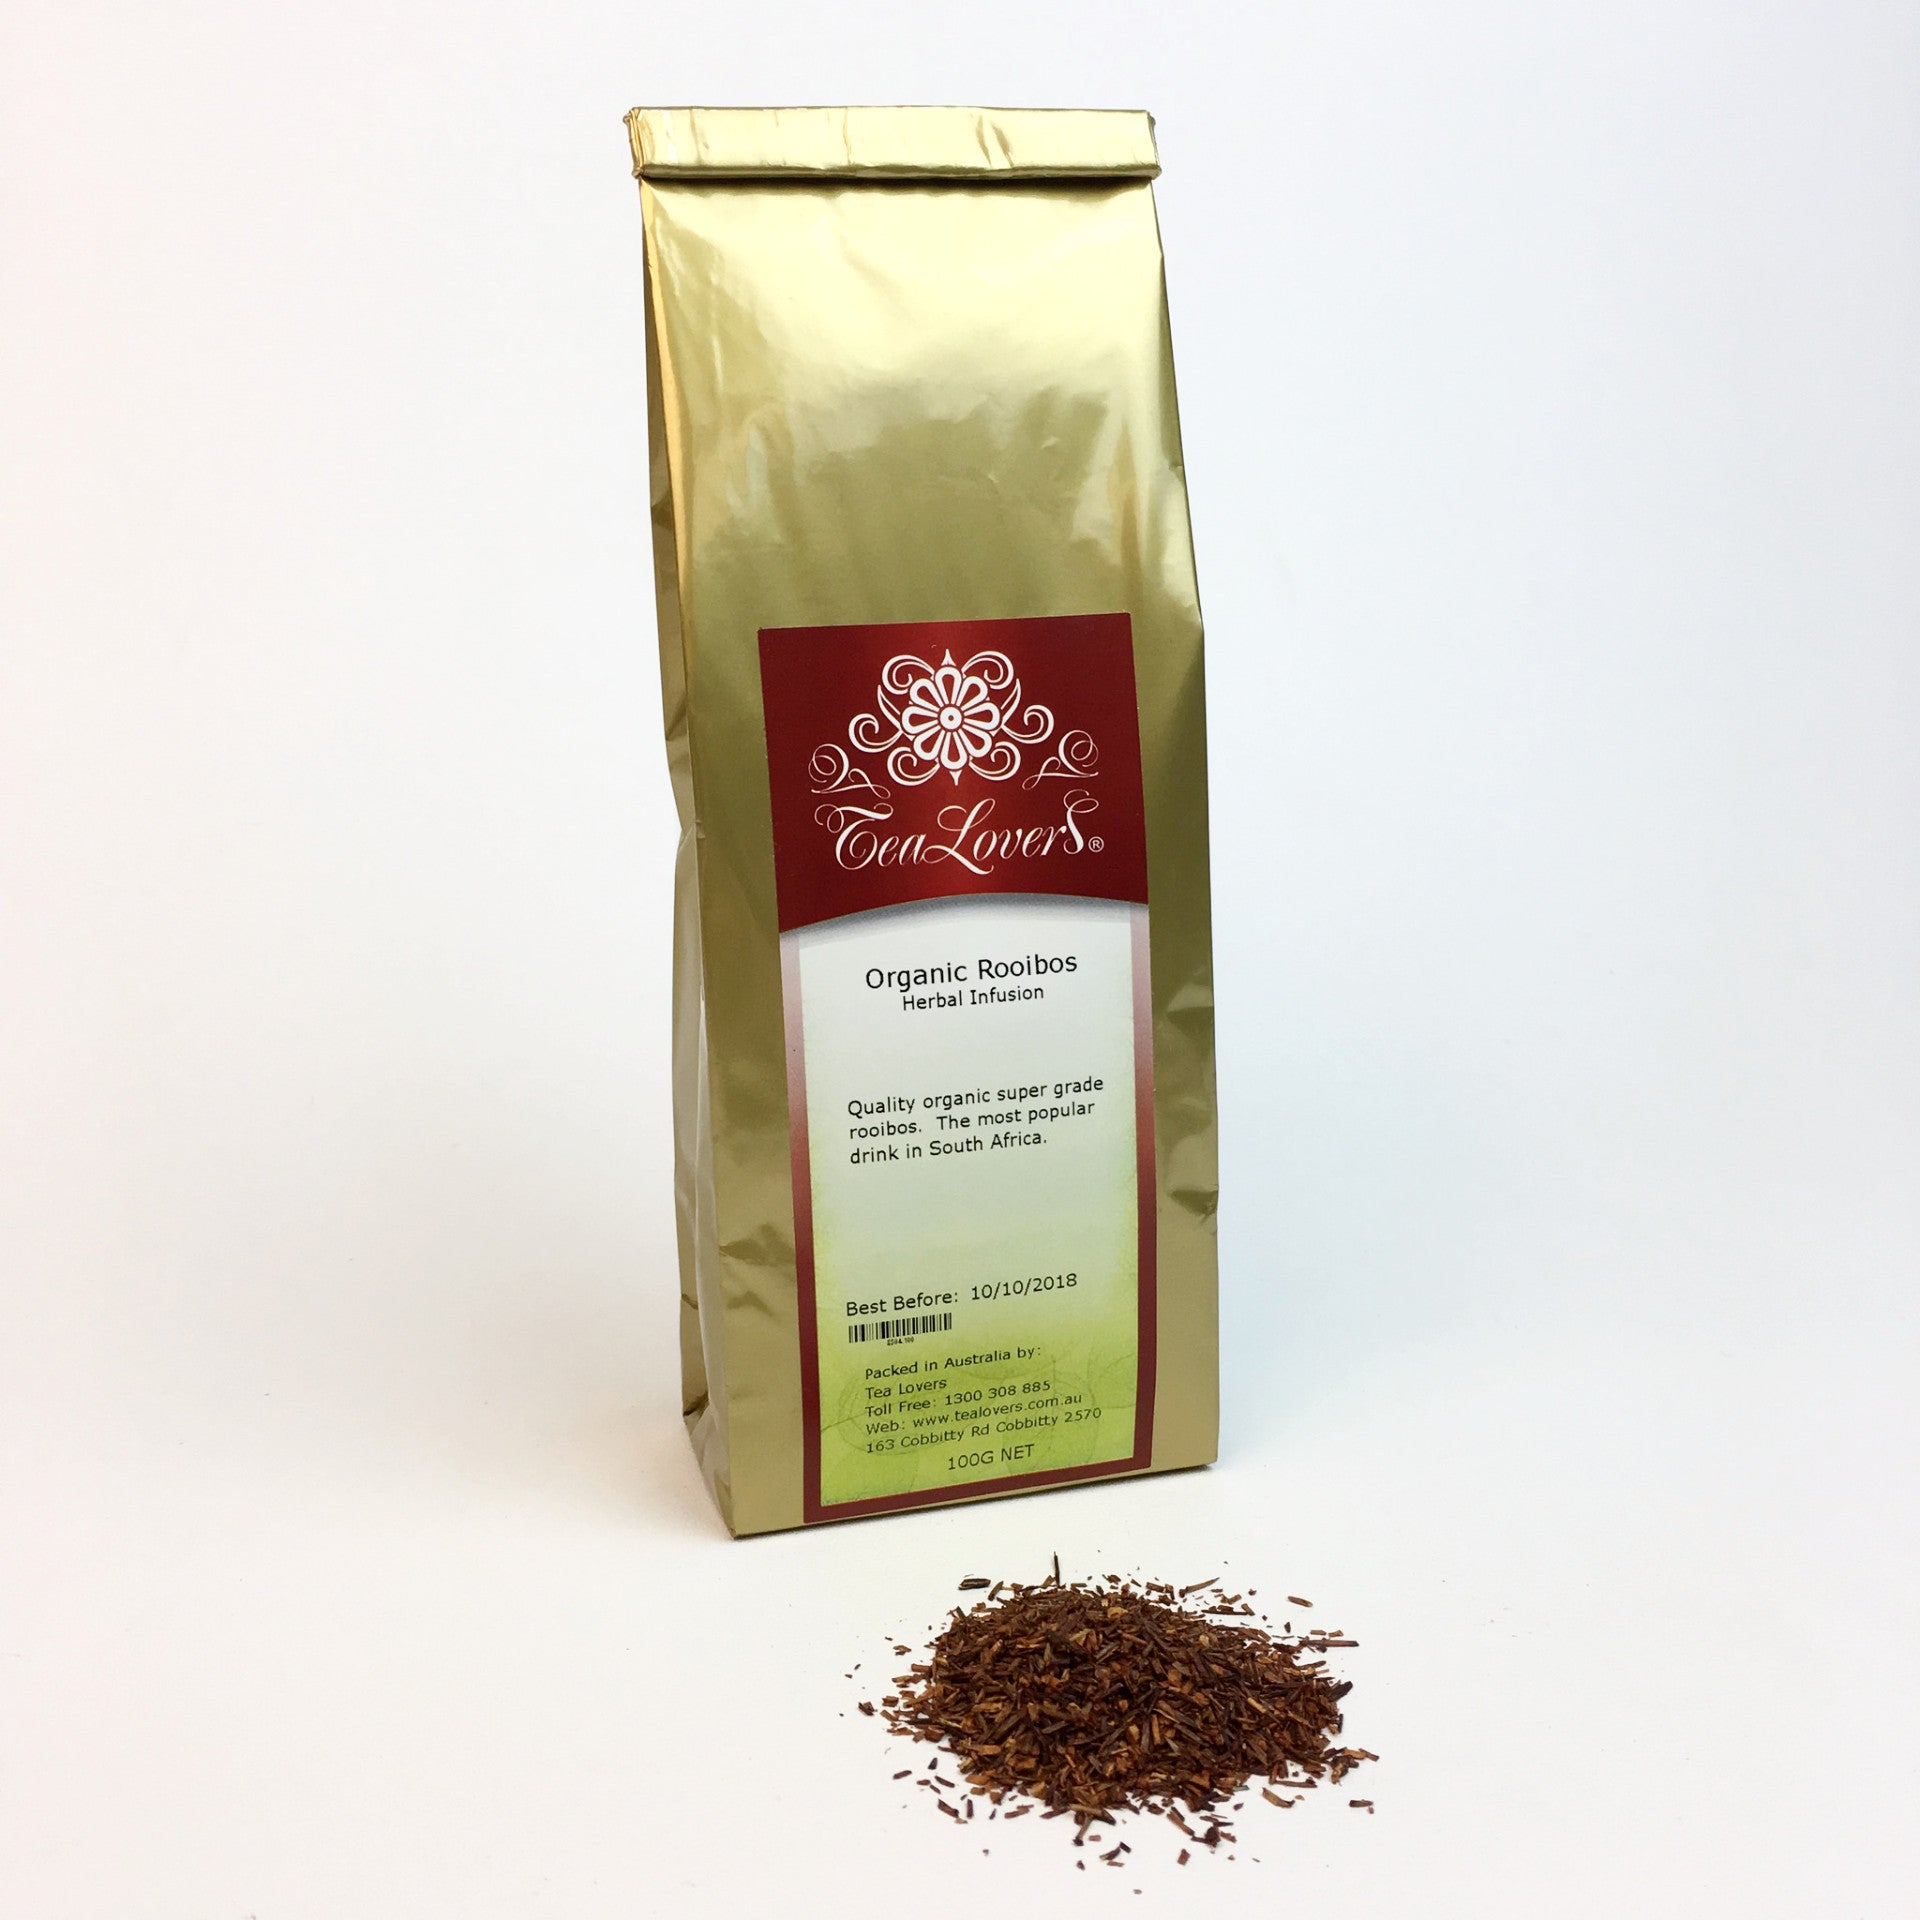 Tea Lovers Rooibos Super Grade (Organic)